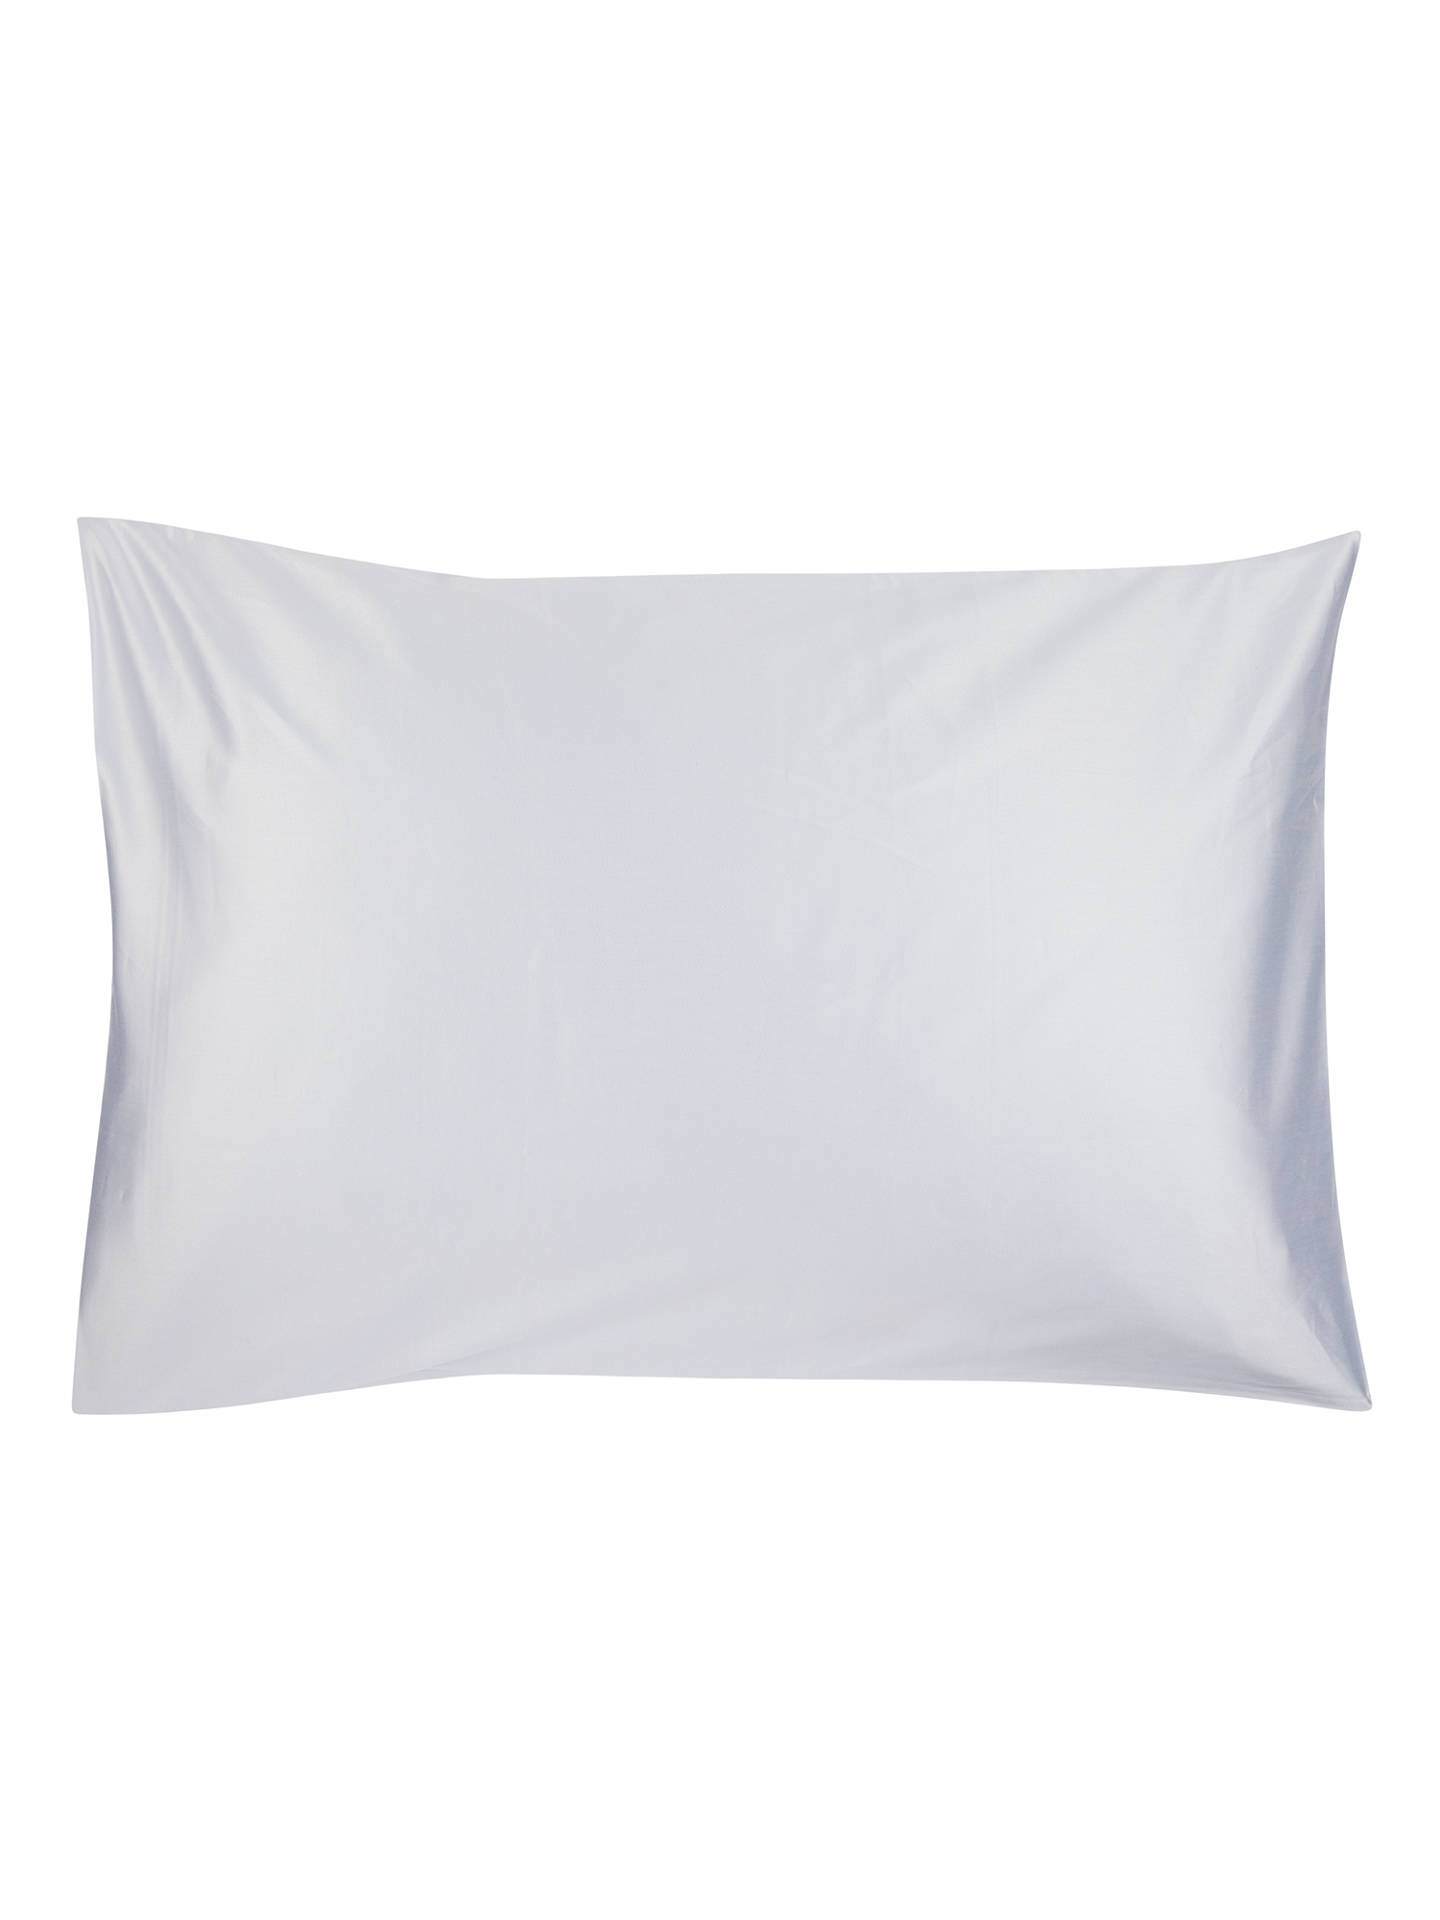 BuyJohn Lewis & Partners The Ultimate Collection 1000 Thread Count Egyptian Cotton Standard Pillowcase, Pale Blue Online at johnlewis.com